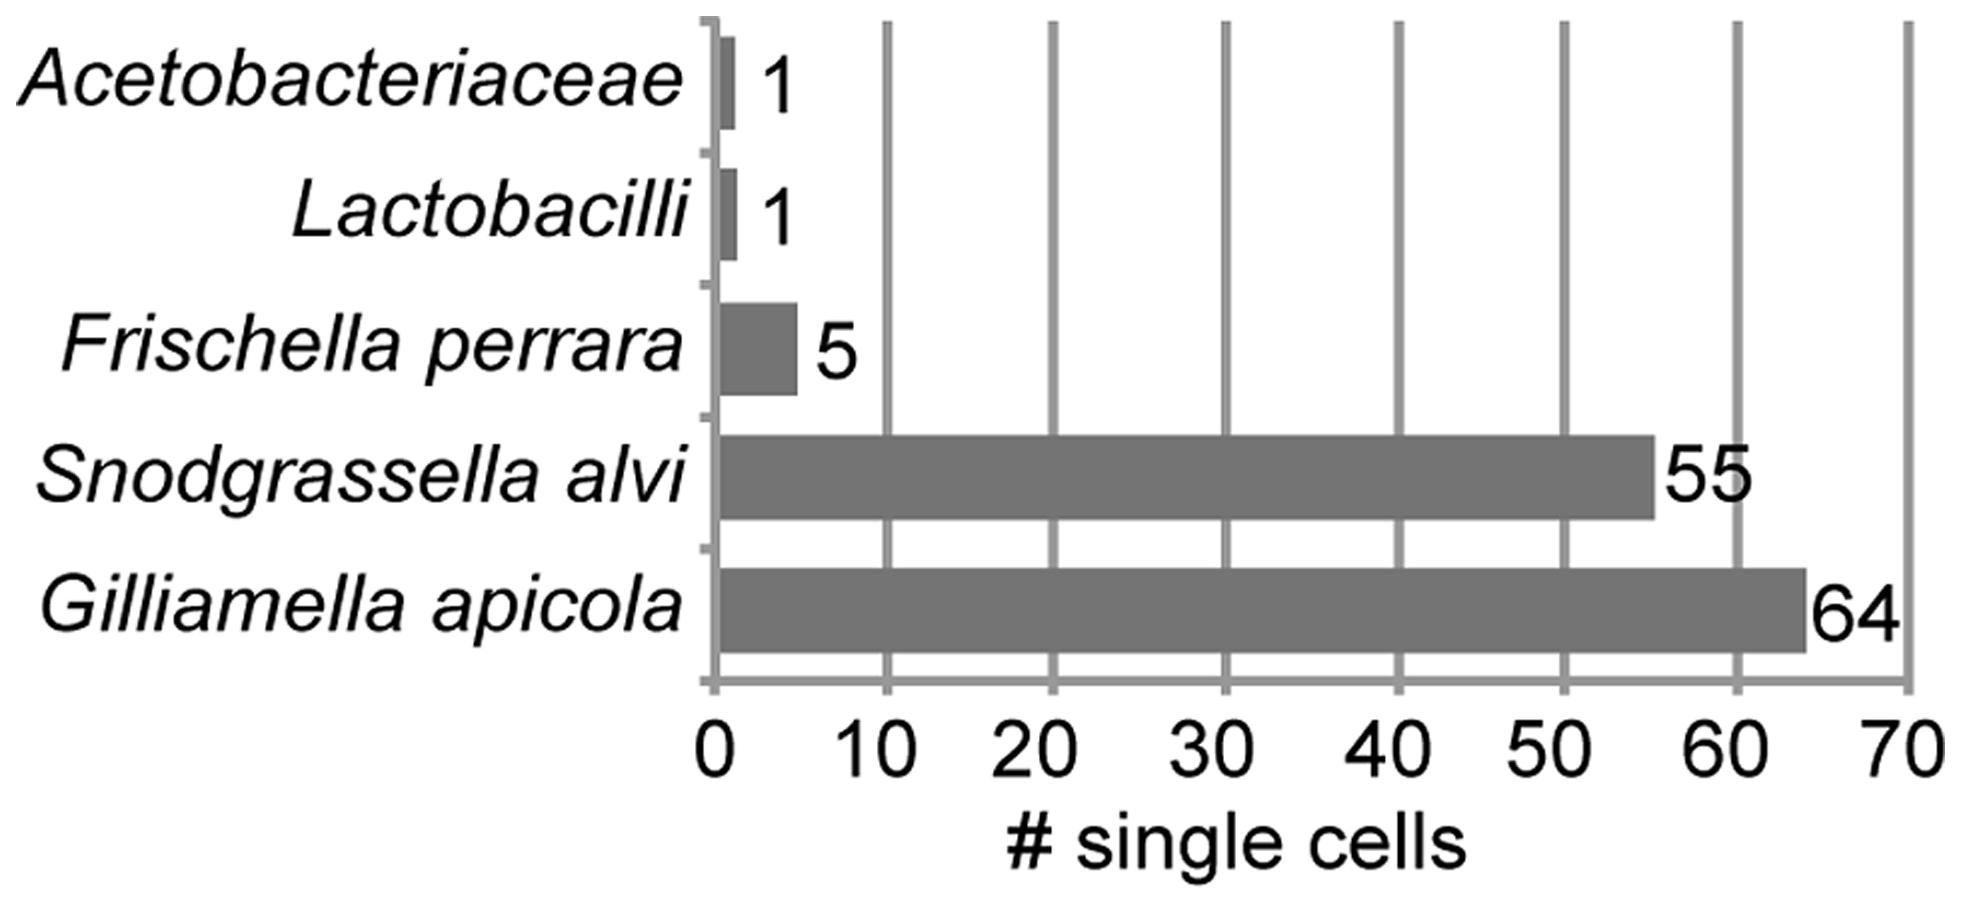 Taxonomic classification of 126 bacterial cells sorted from midguts and ileums of honey bees.